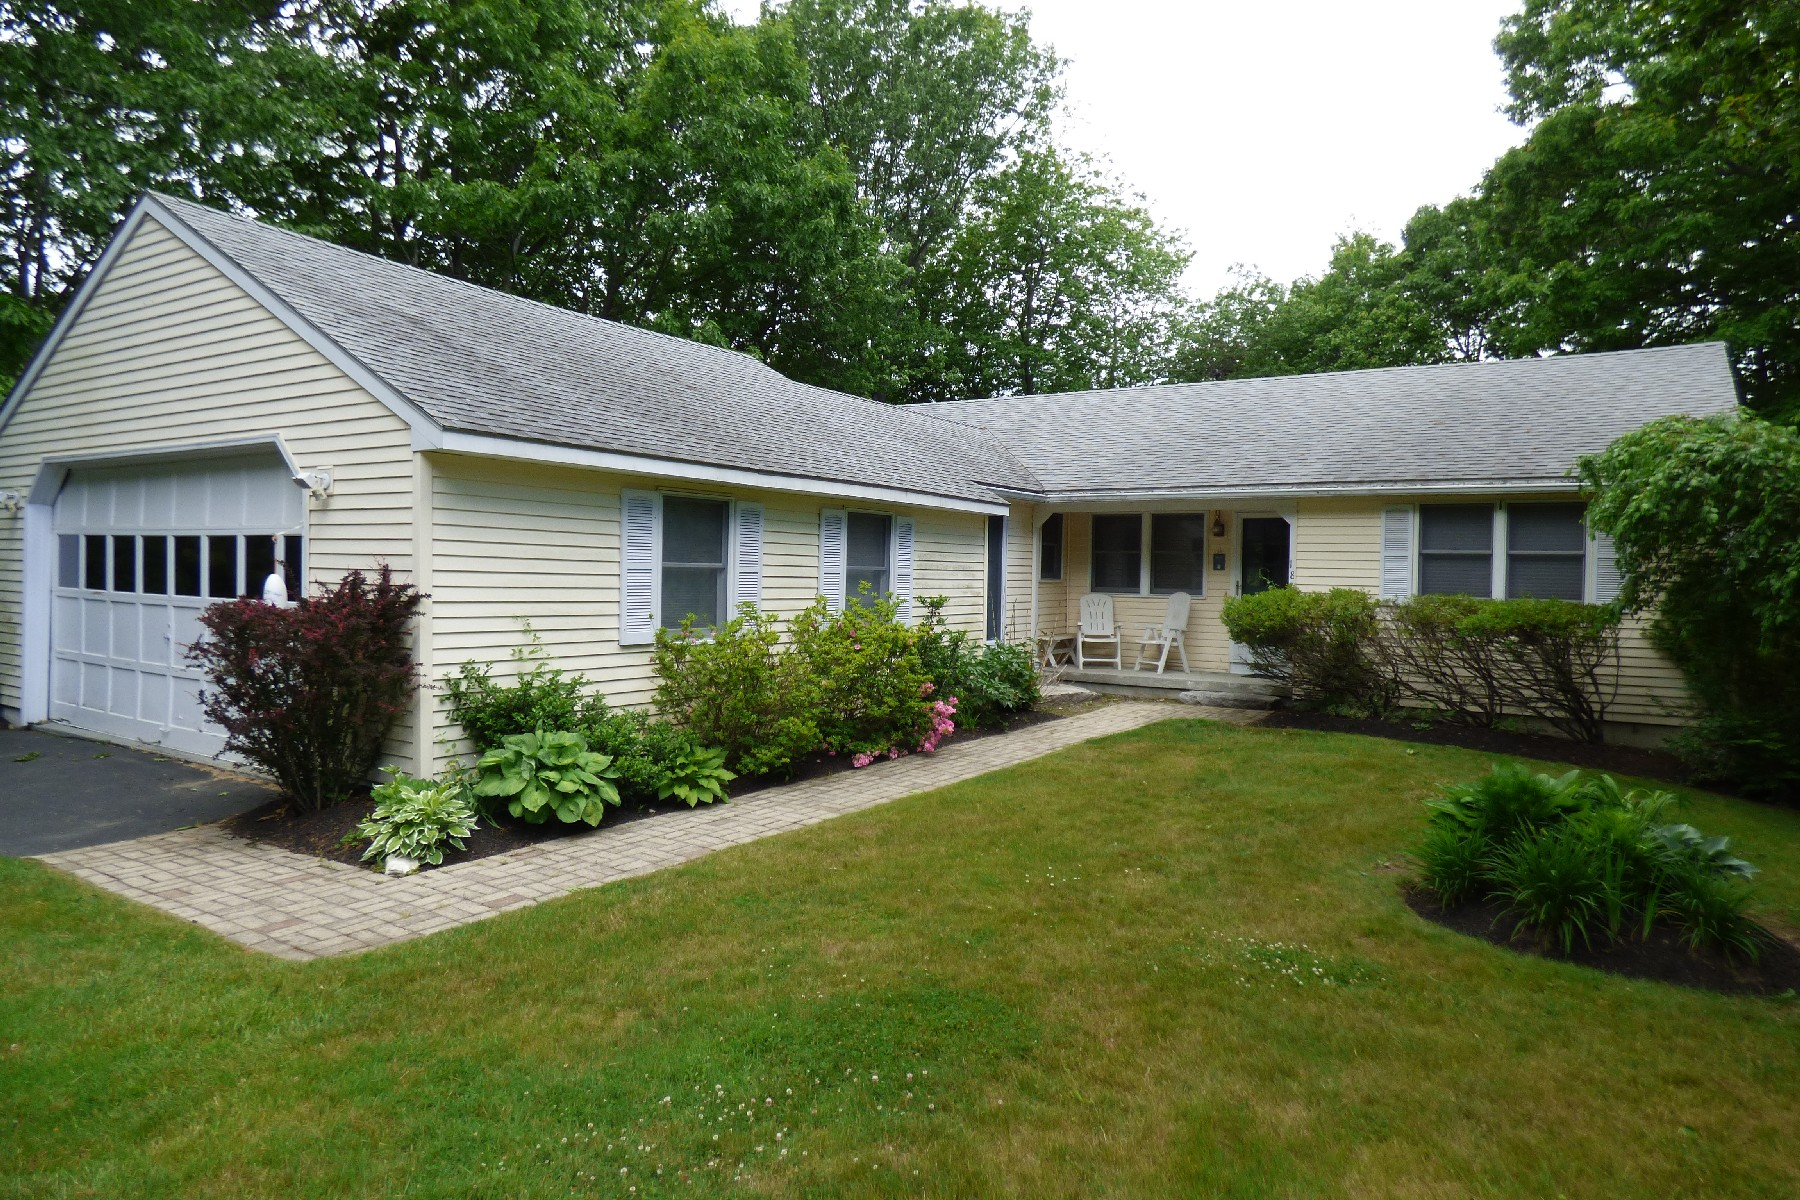 Single Family Home for Sale at Charming York Ranch 18 Glenn Lane York, Maine, 03909 United States